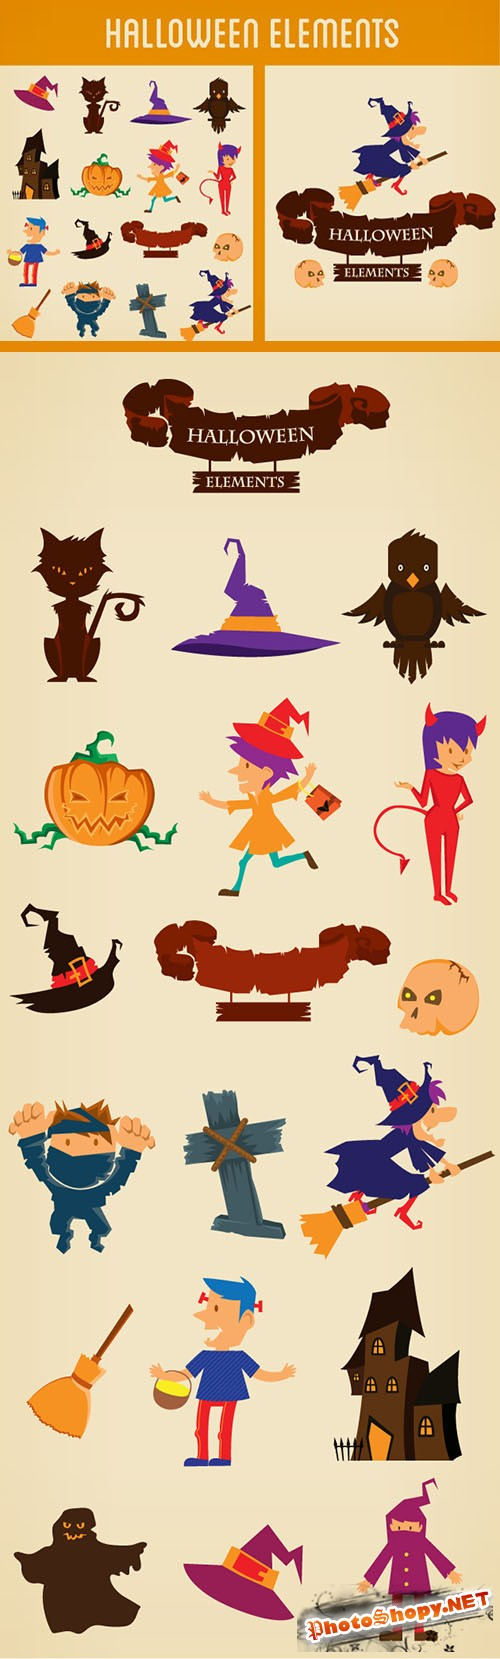 Designtnt - Halloween Vector Elements Set 2